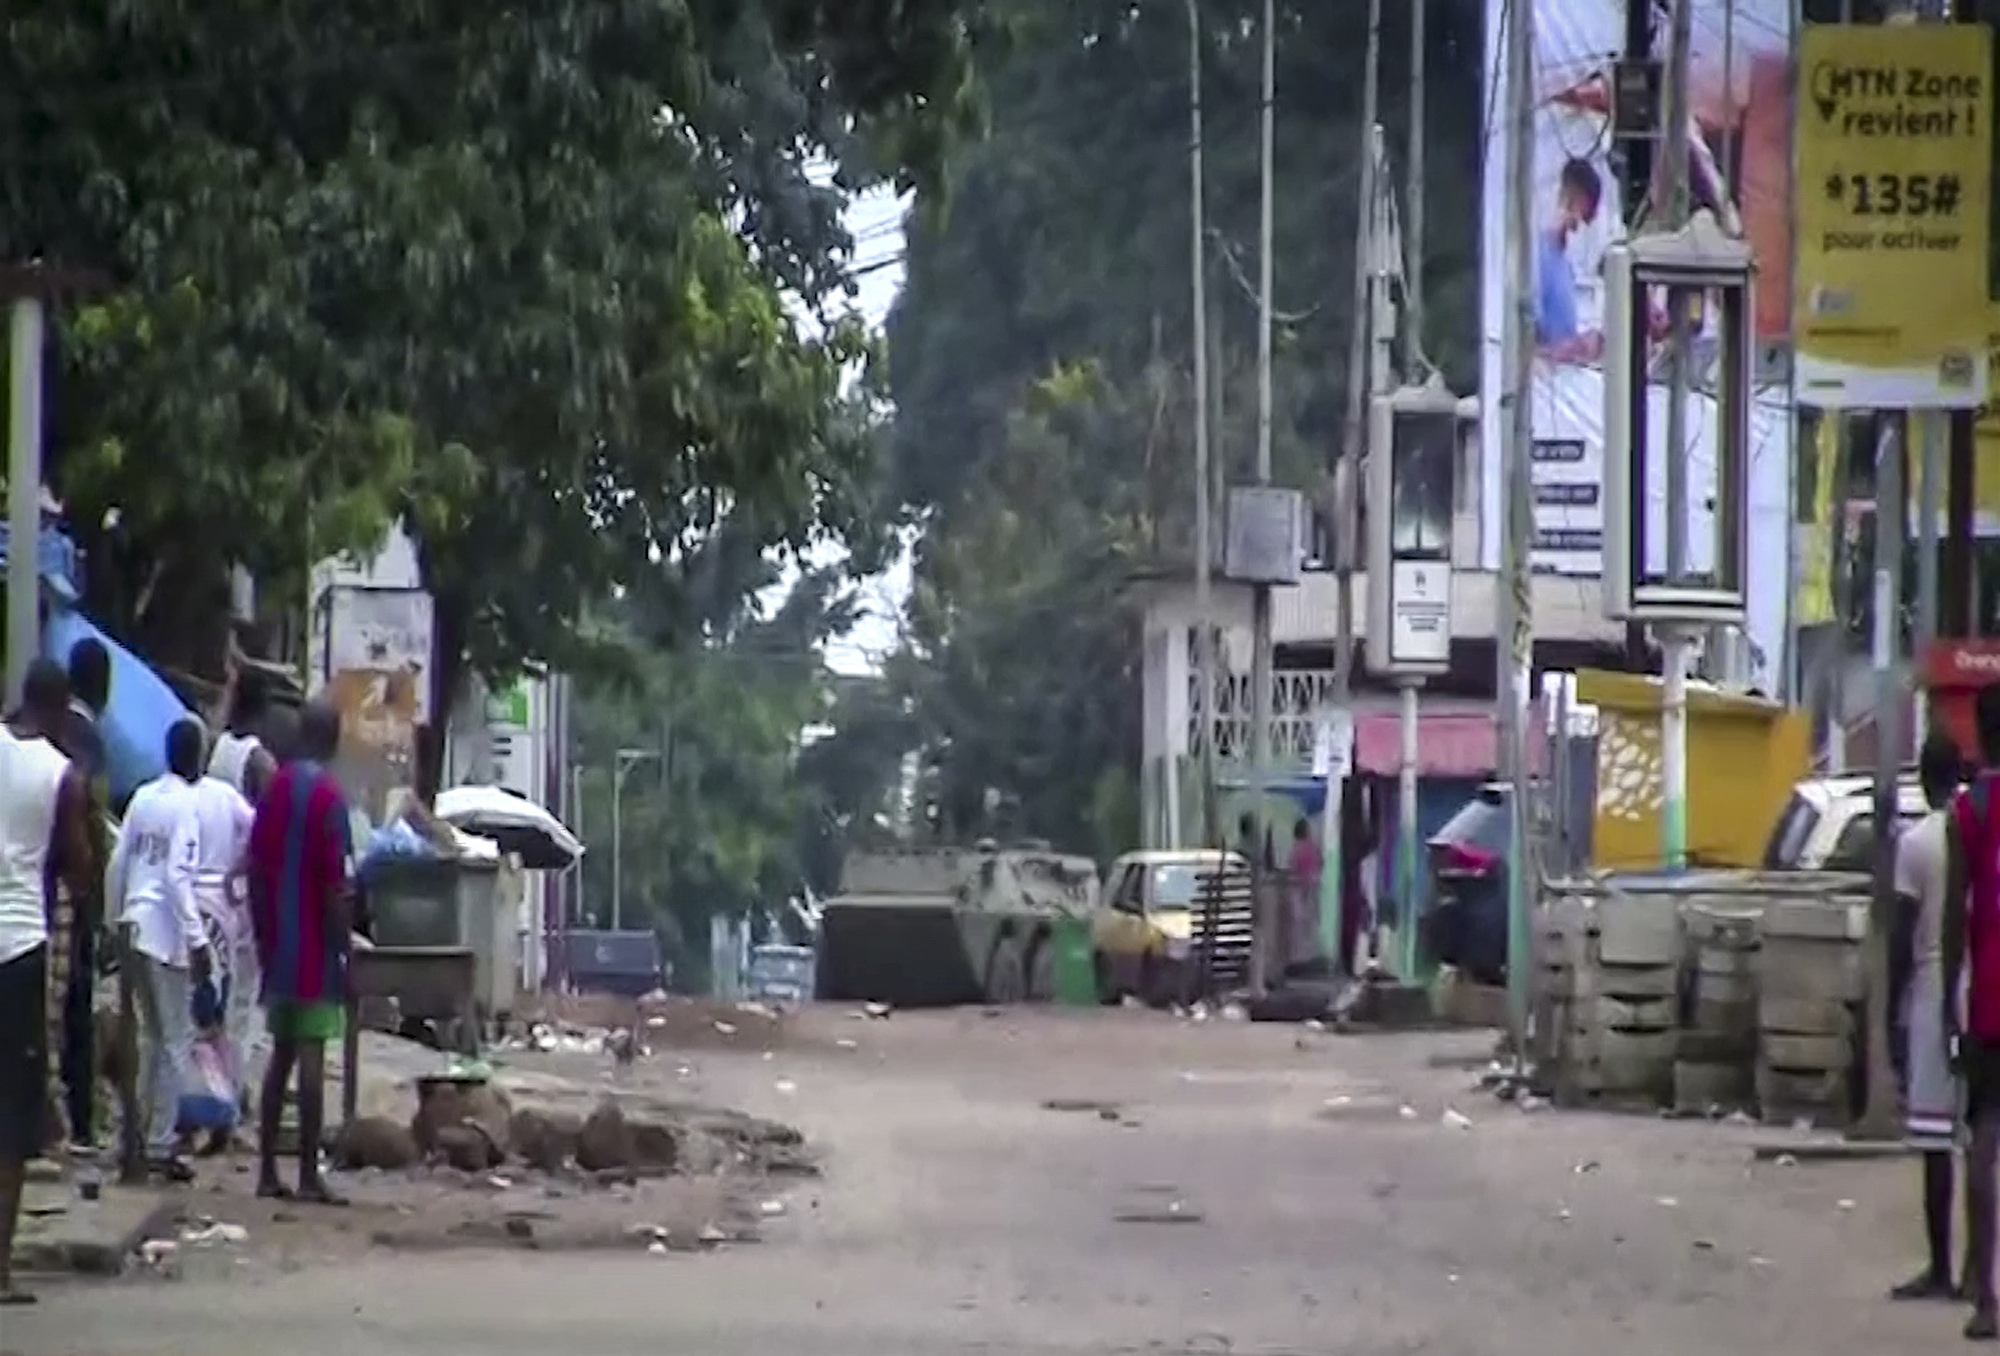 Soldiers detain Guinea's president, dissolve government